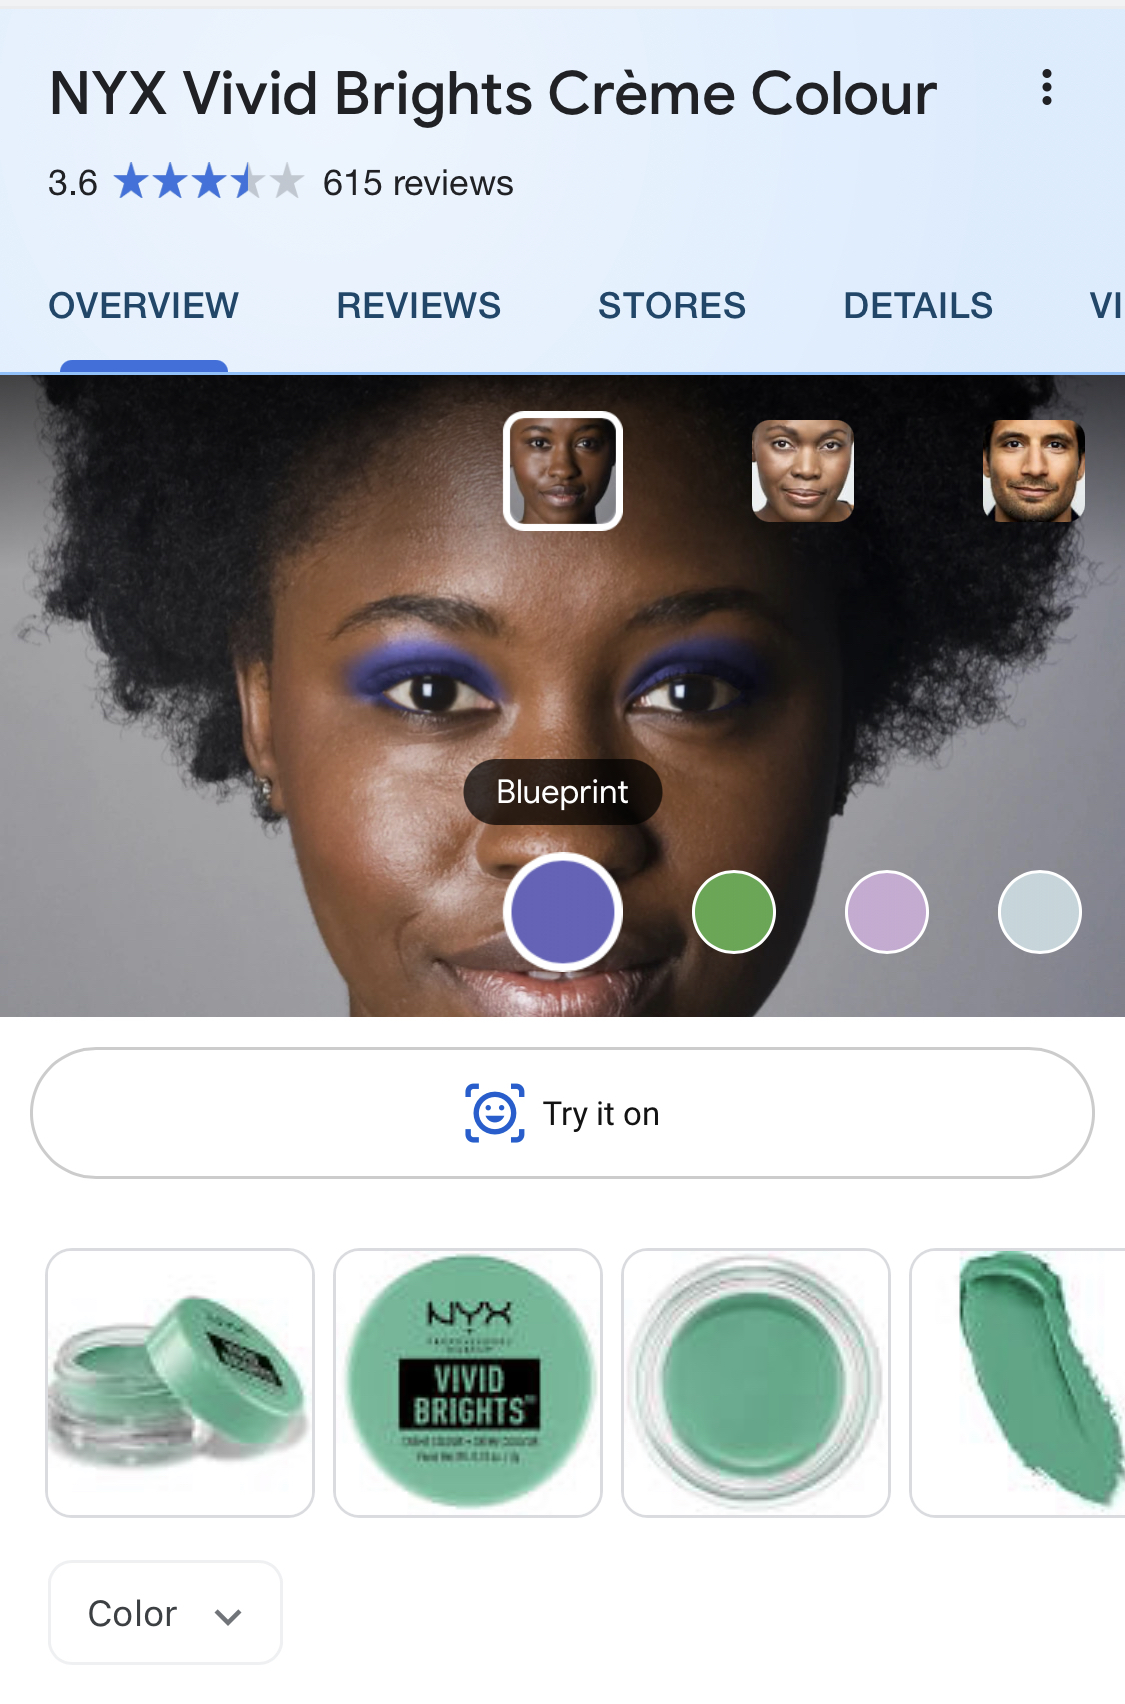 Image of the new model view and the Try it on button